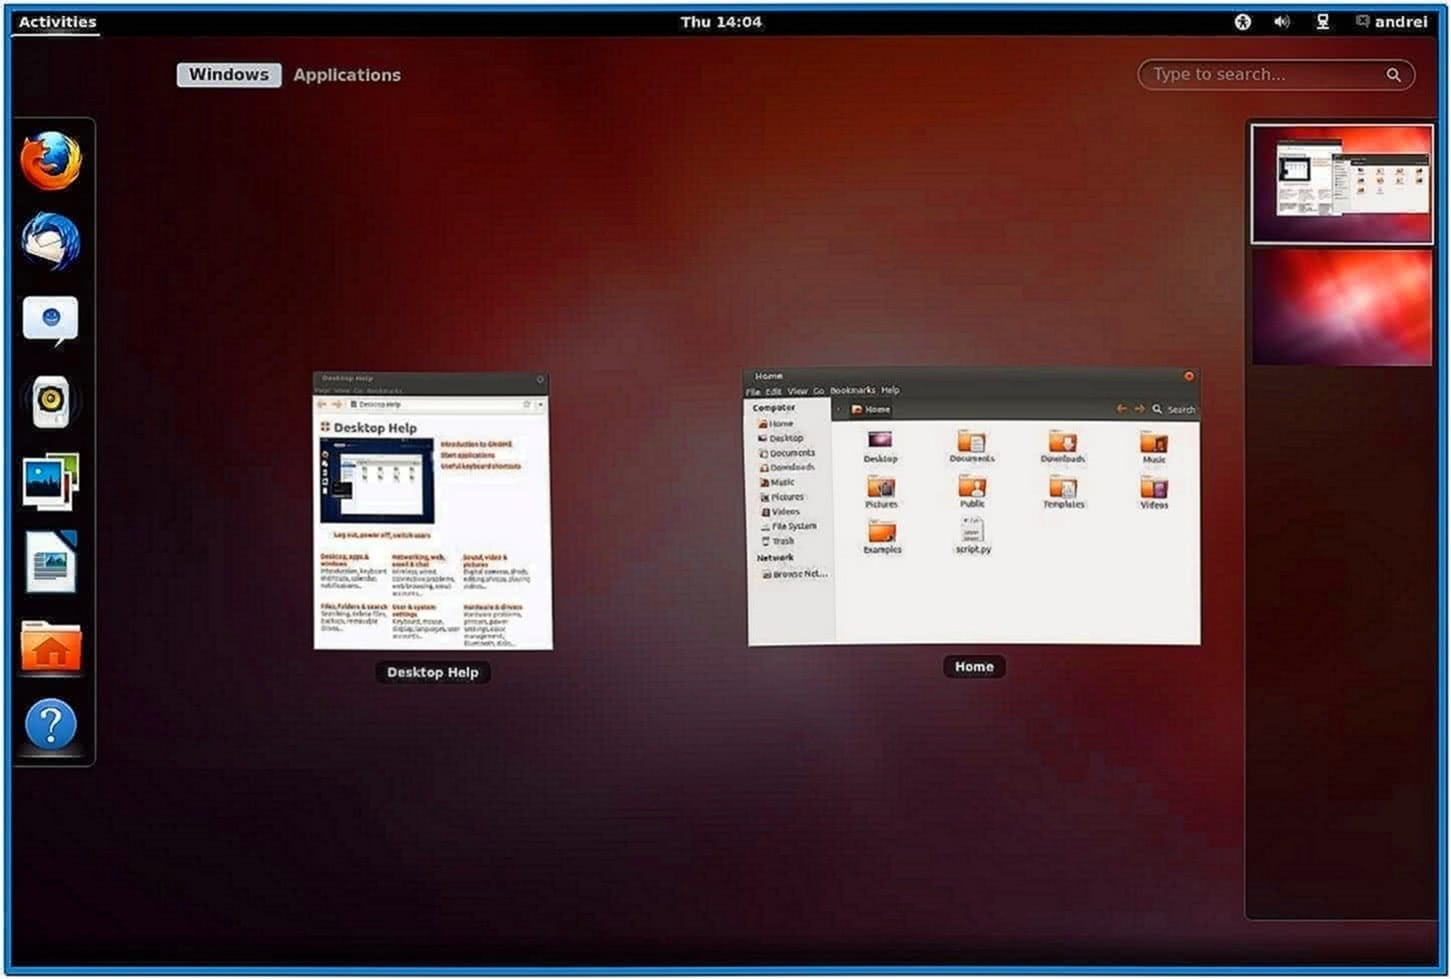 Ubuntu 12.04 Gnome Shell Screensaver